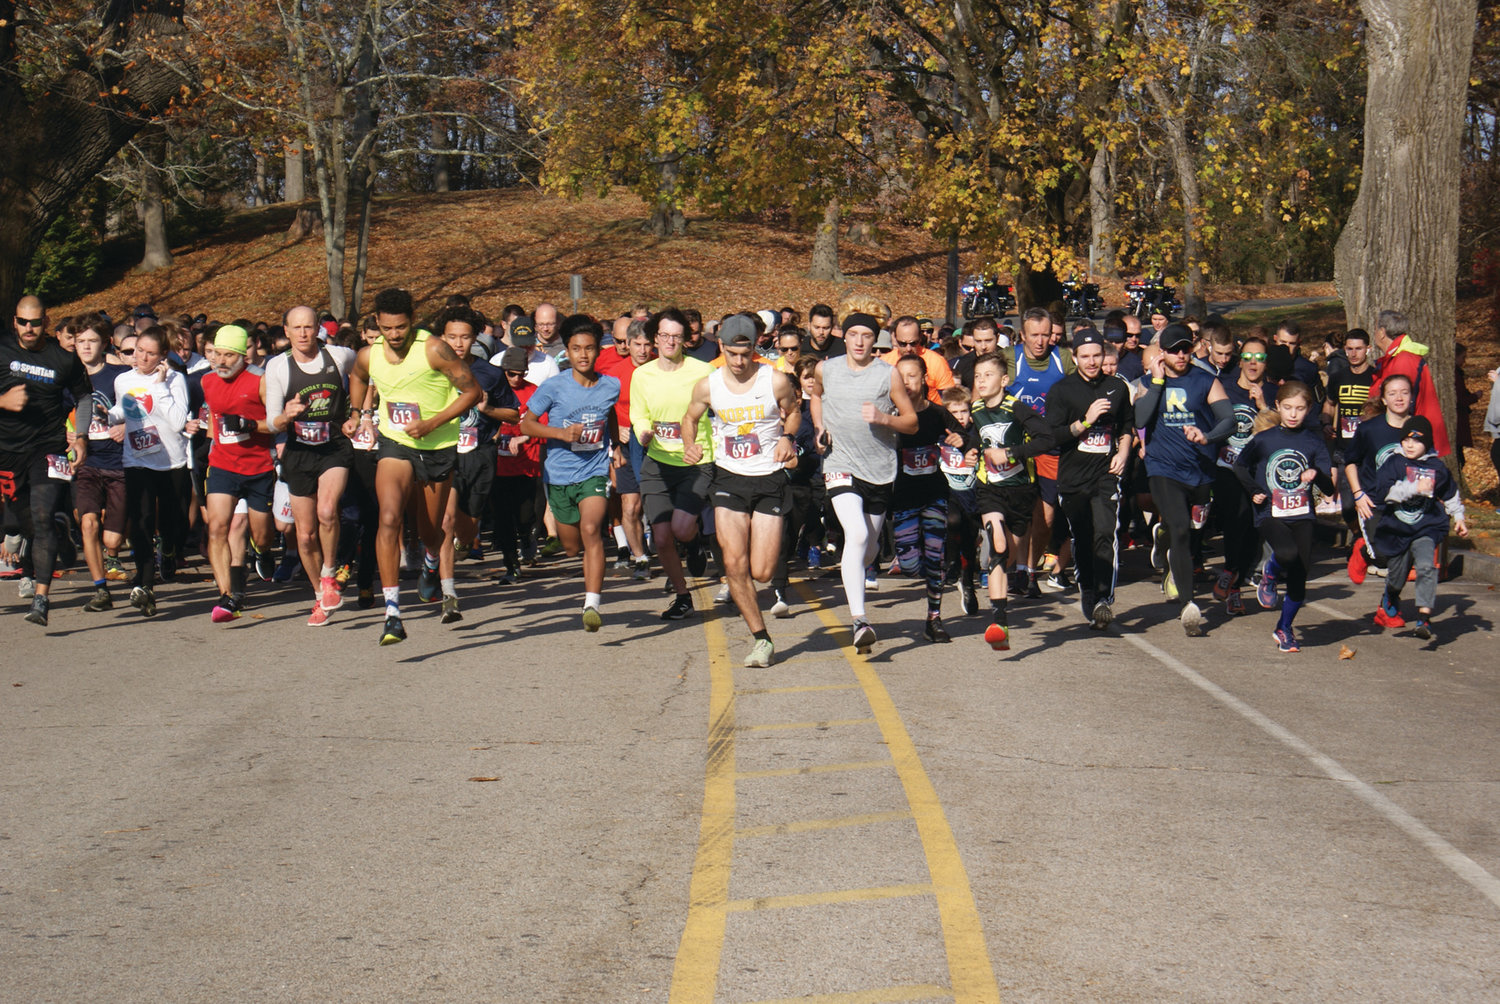 AND THEY'RE OFF! Approximately 600 people took part in Monday's seventh annual Park View Veterans Day 5K.